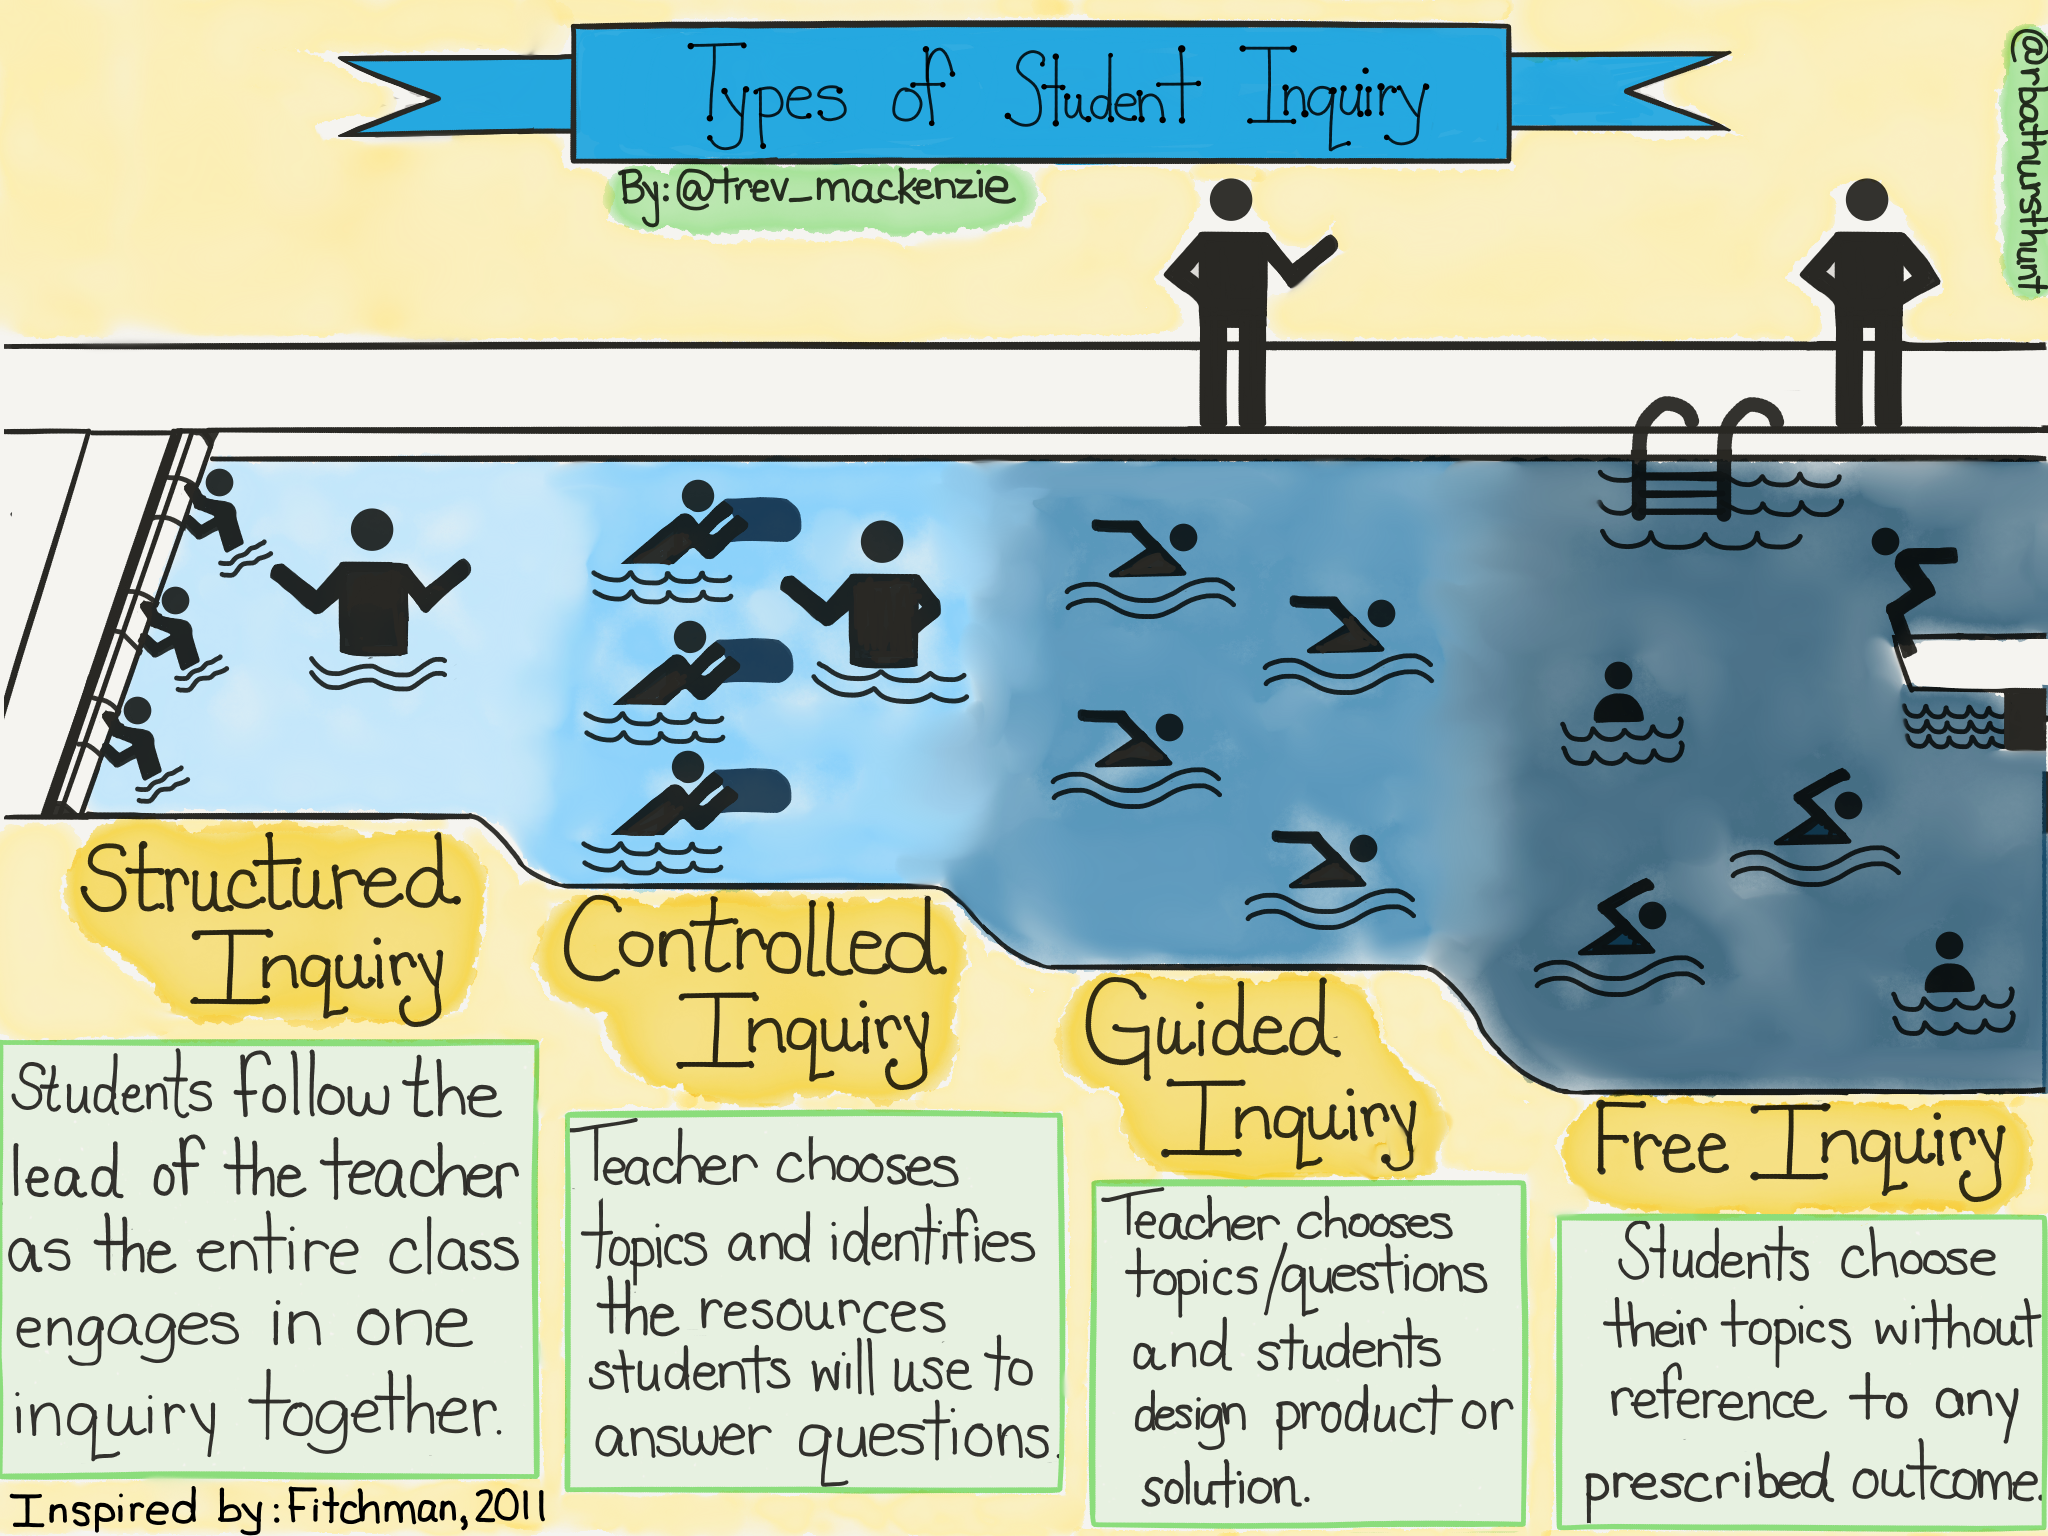 Types-of-Student-Inquiry.png